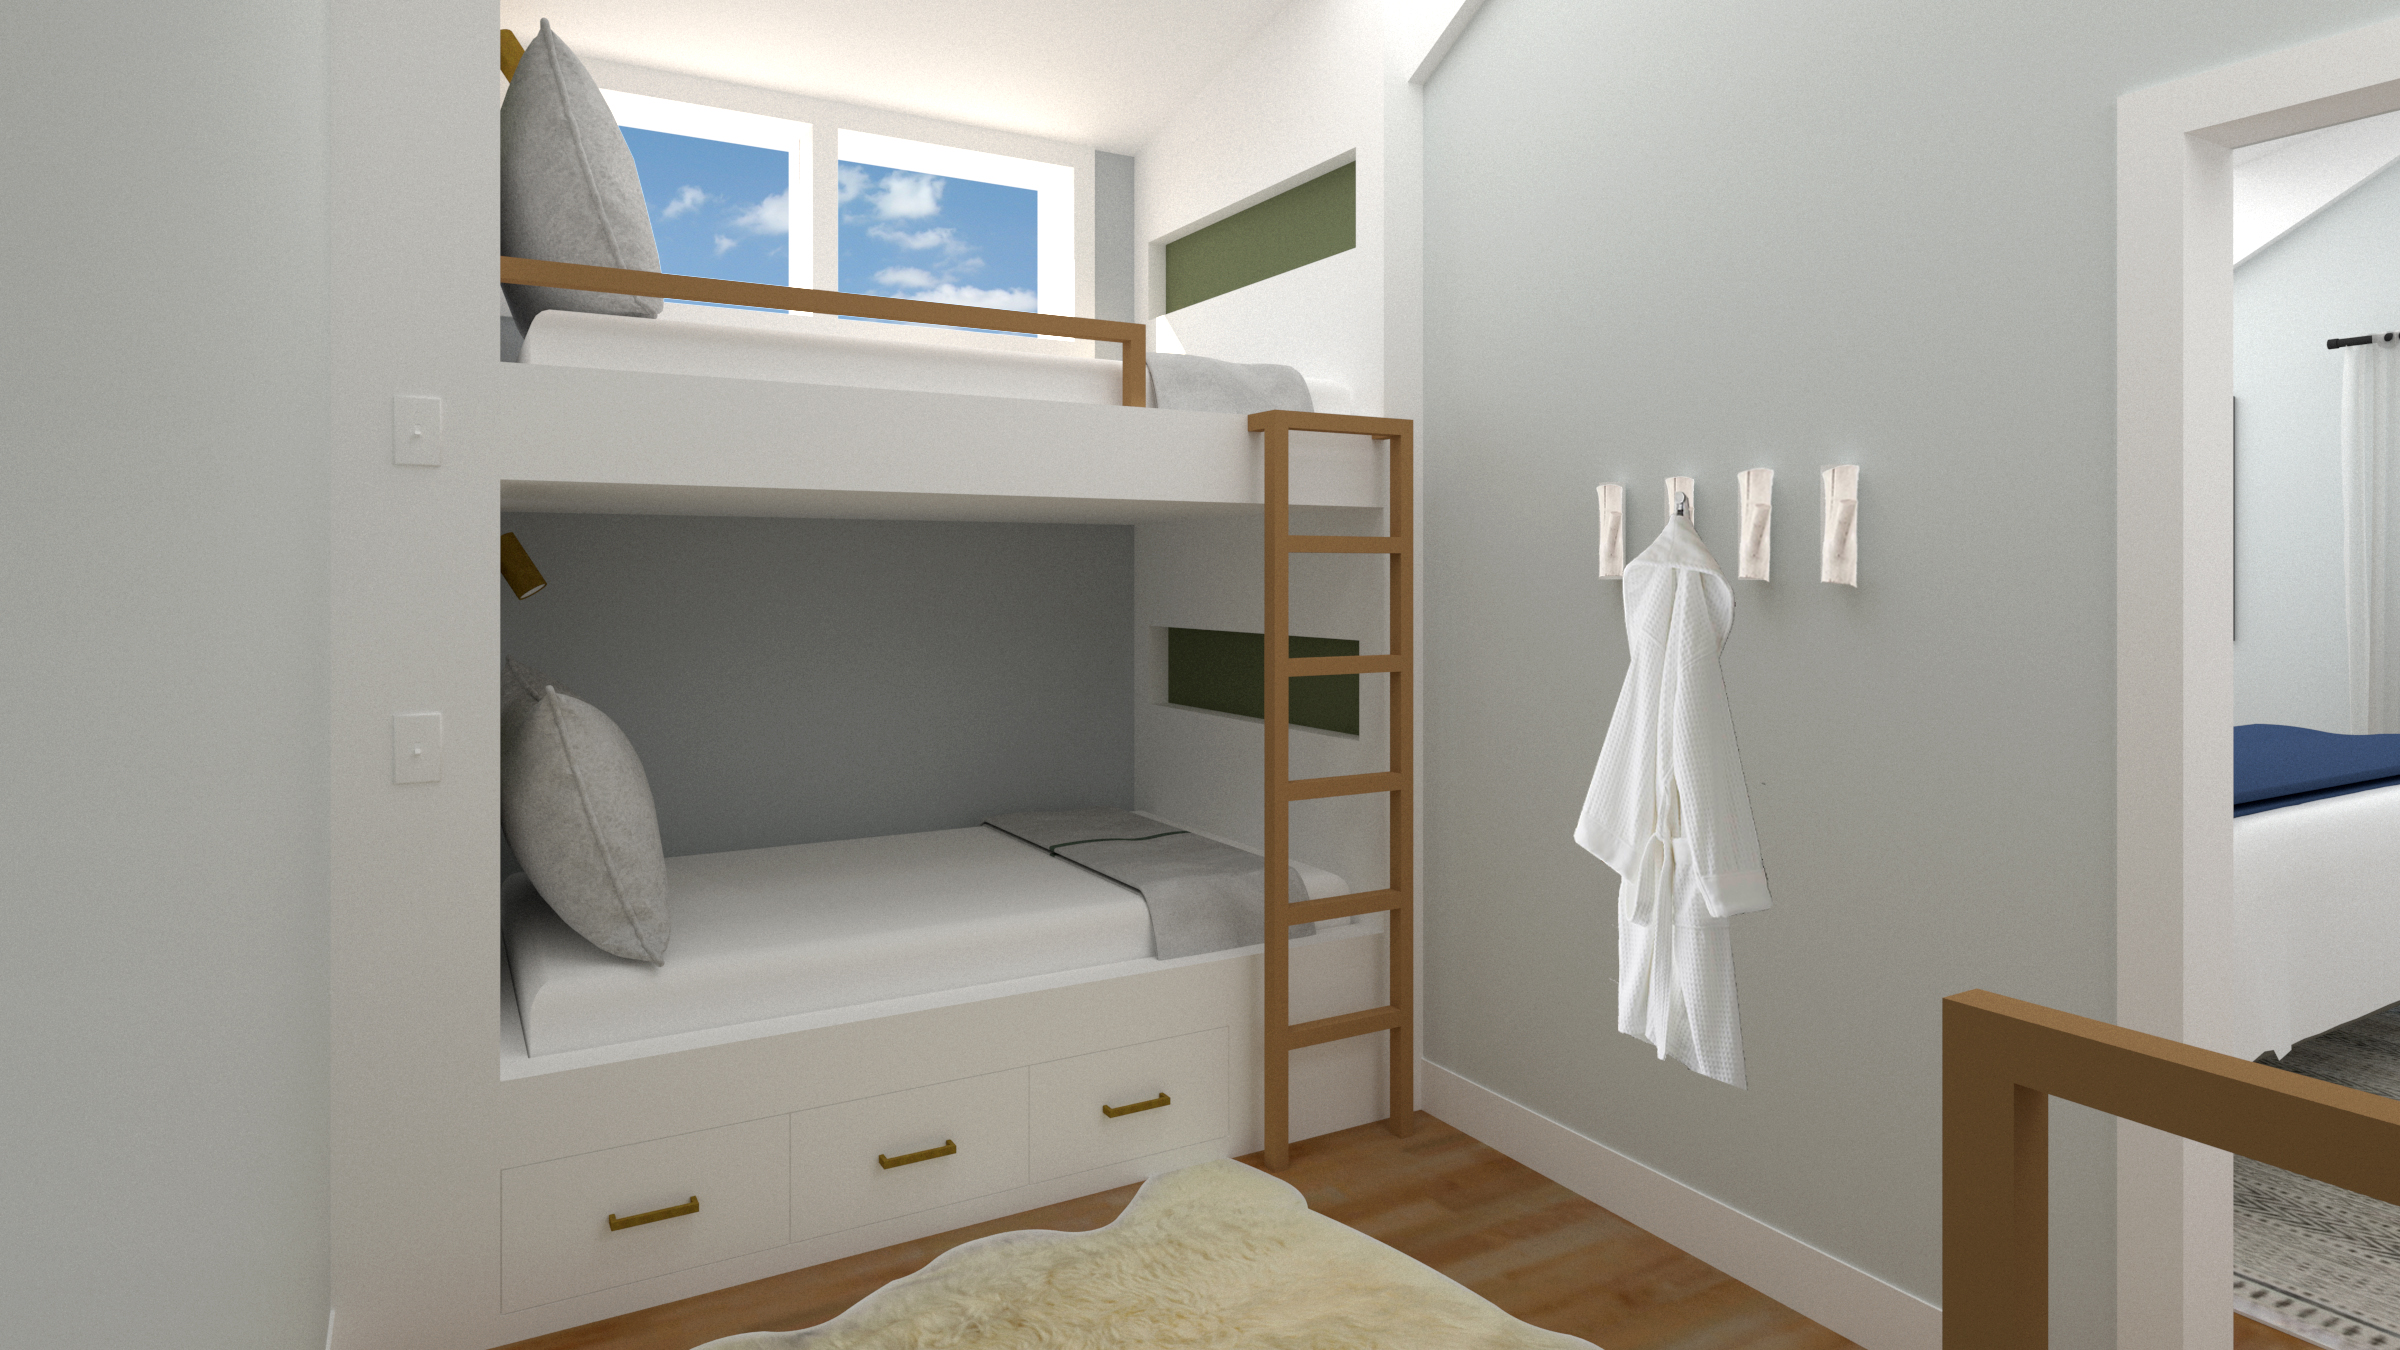 Custom twin bunks fit the space perfectly! We incorporated the same wood tones from downstairs and pops of the same sage green to keep things cohesive.